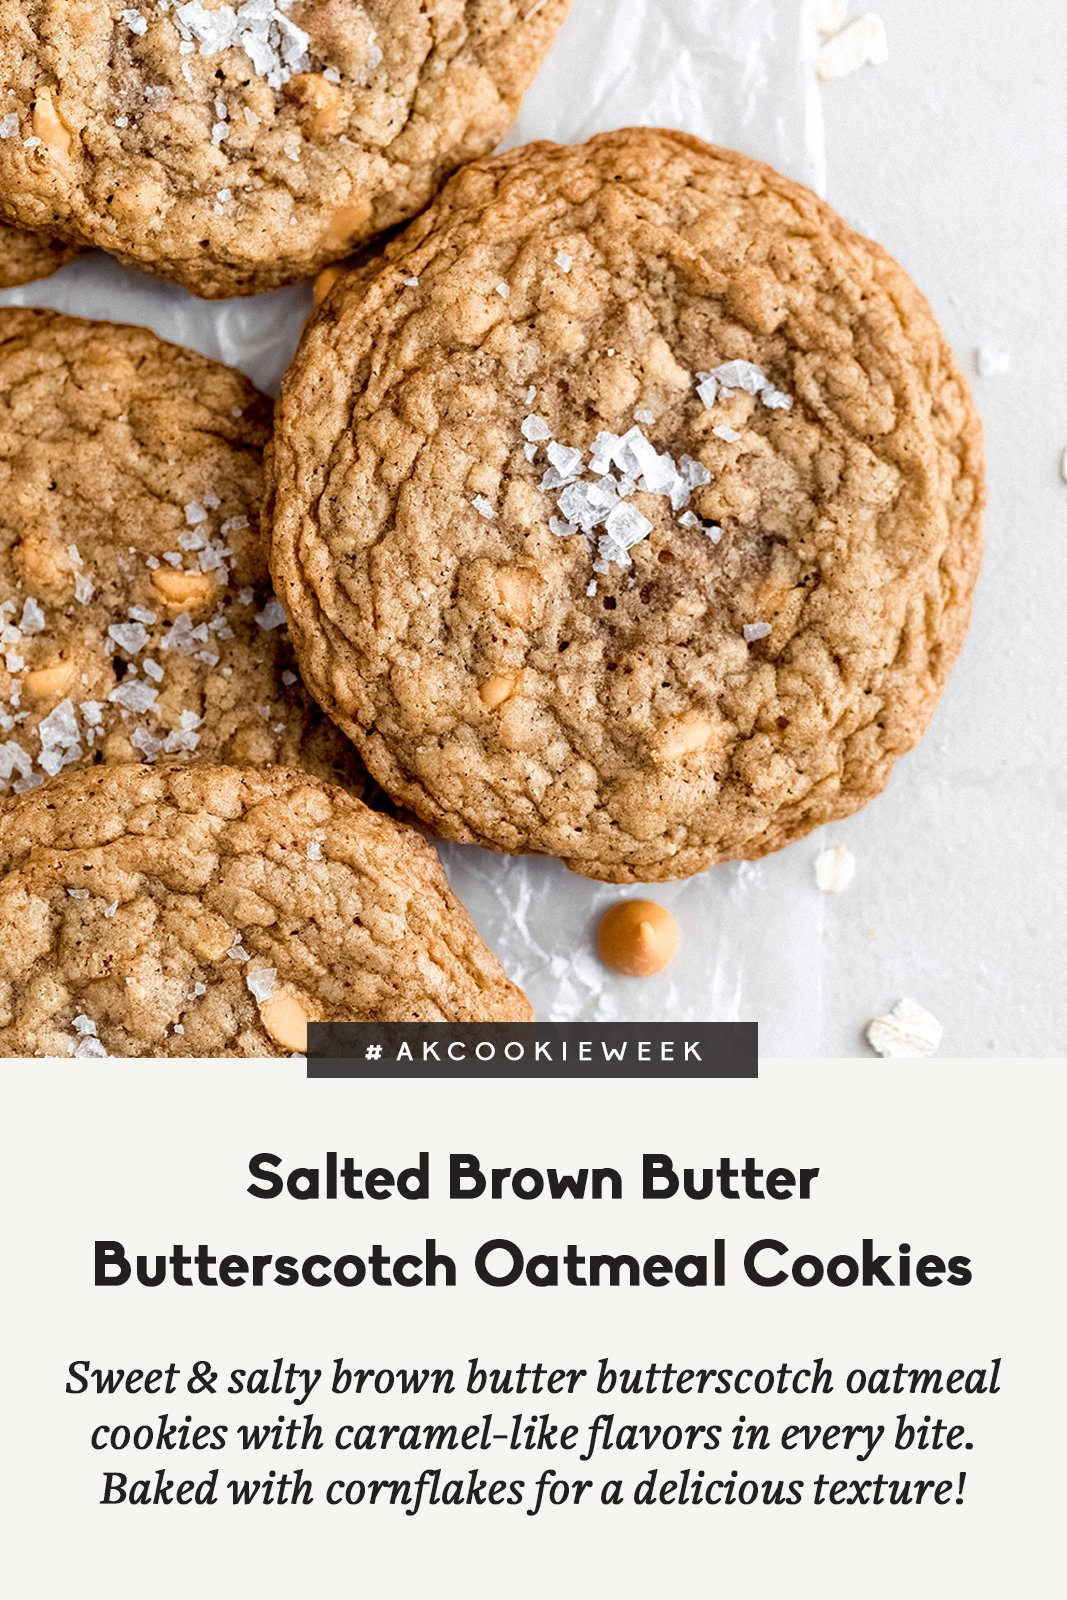 butterscotch oatmeal cookies with a title underneath